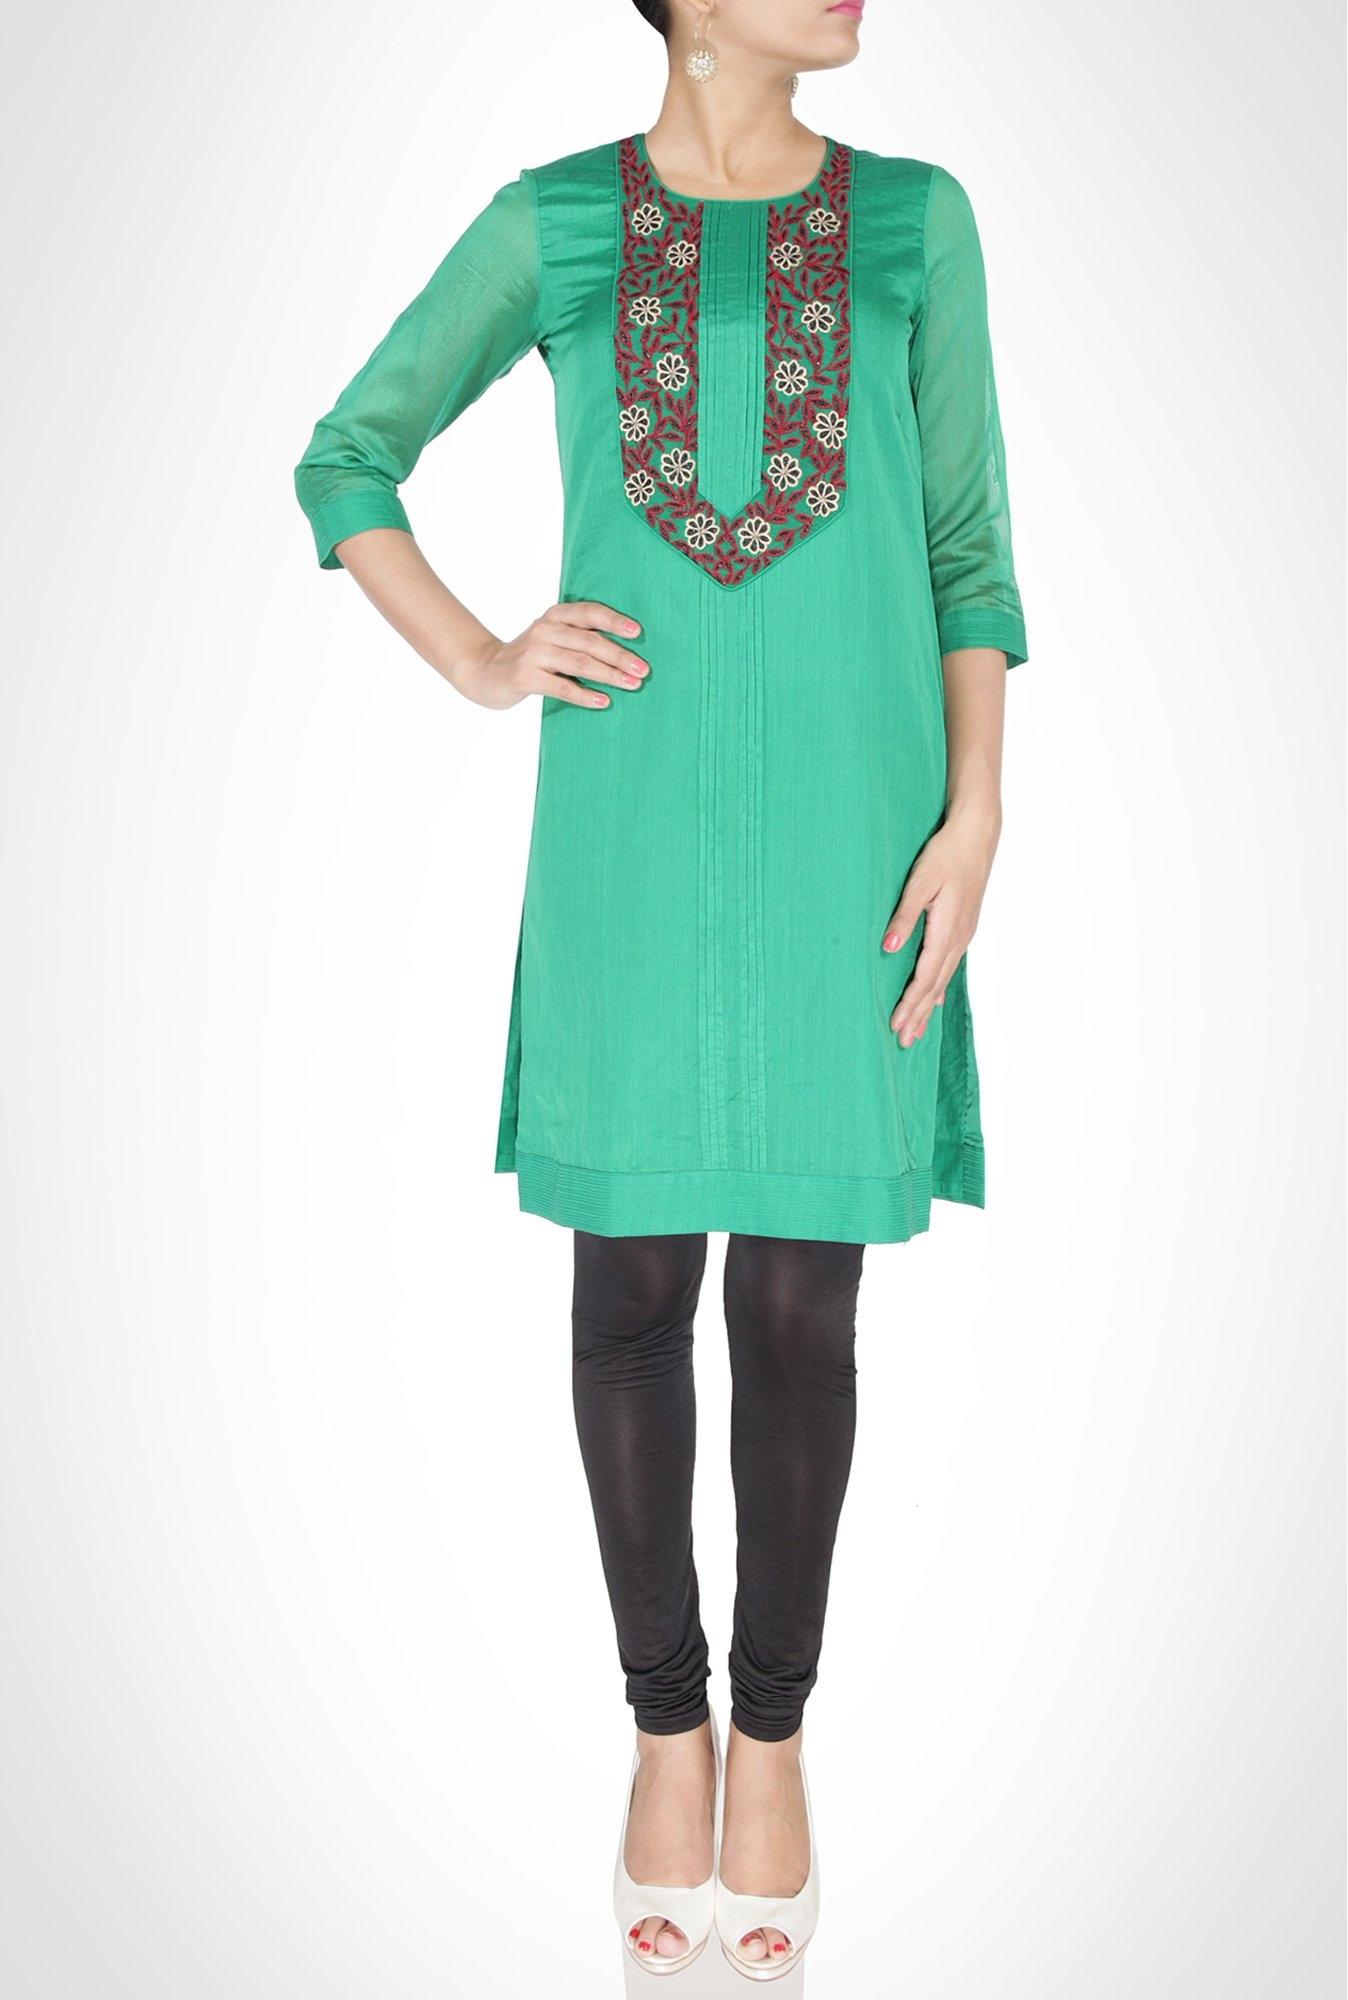 Swapan & Seema Designer Wear Green Kurti By Kimaya